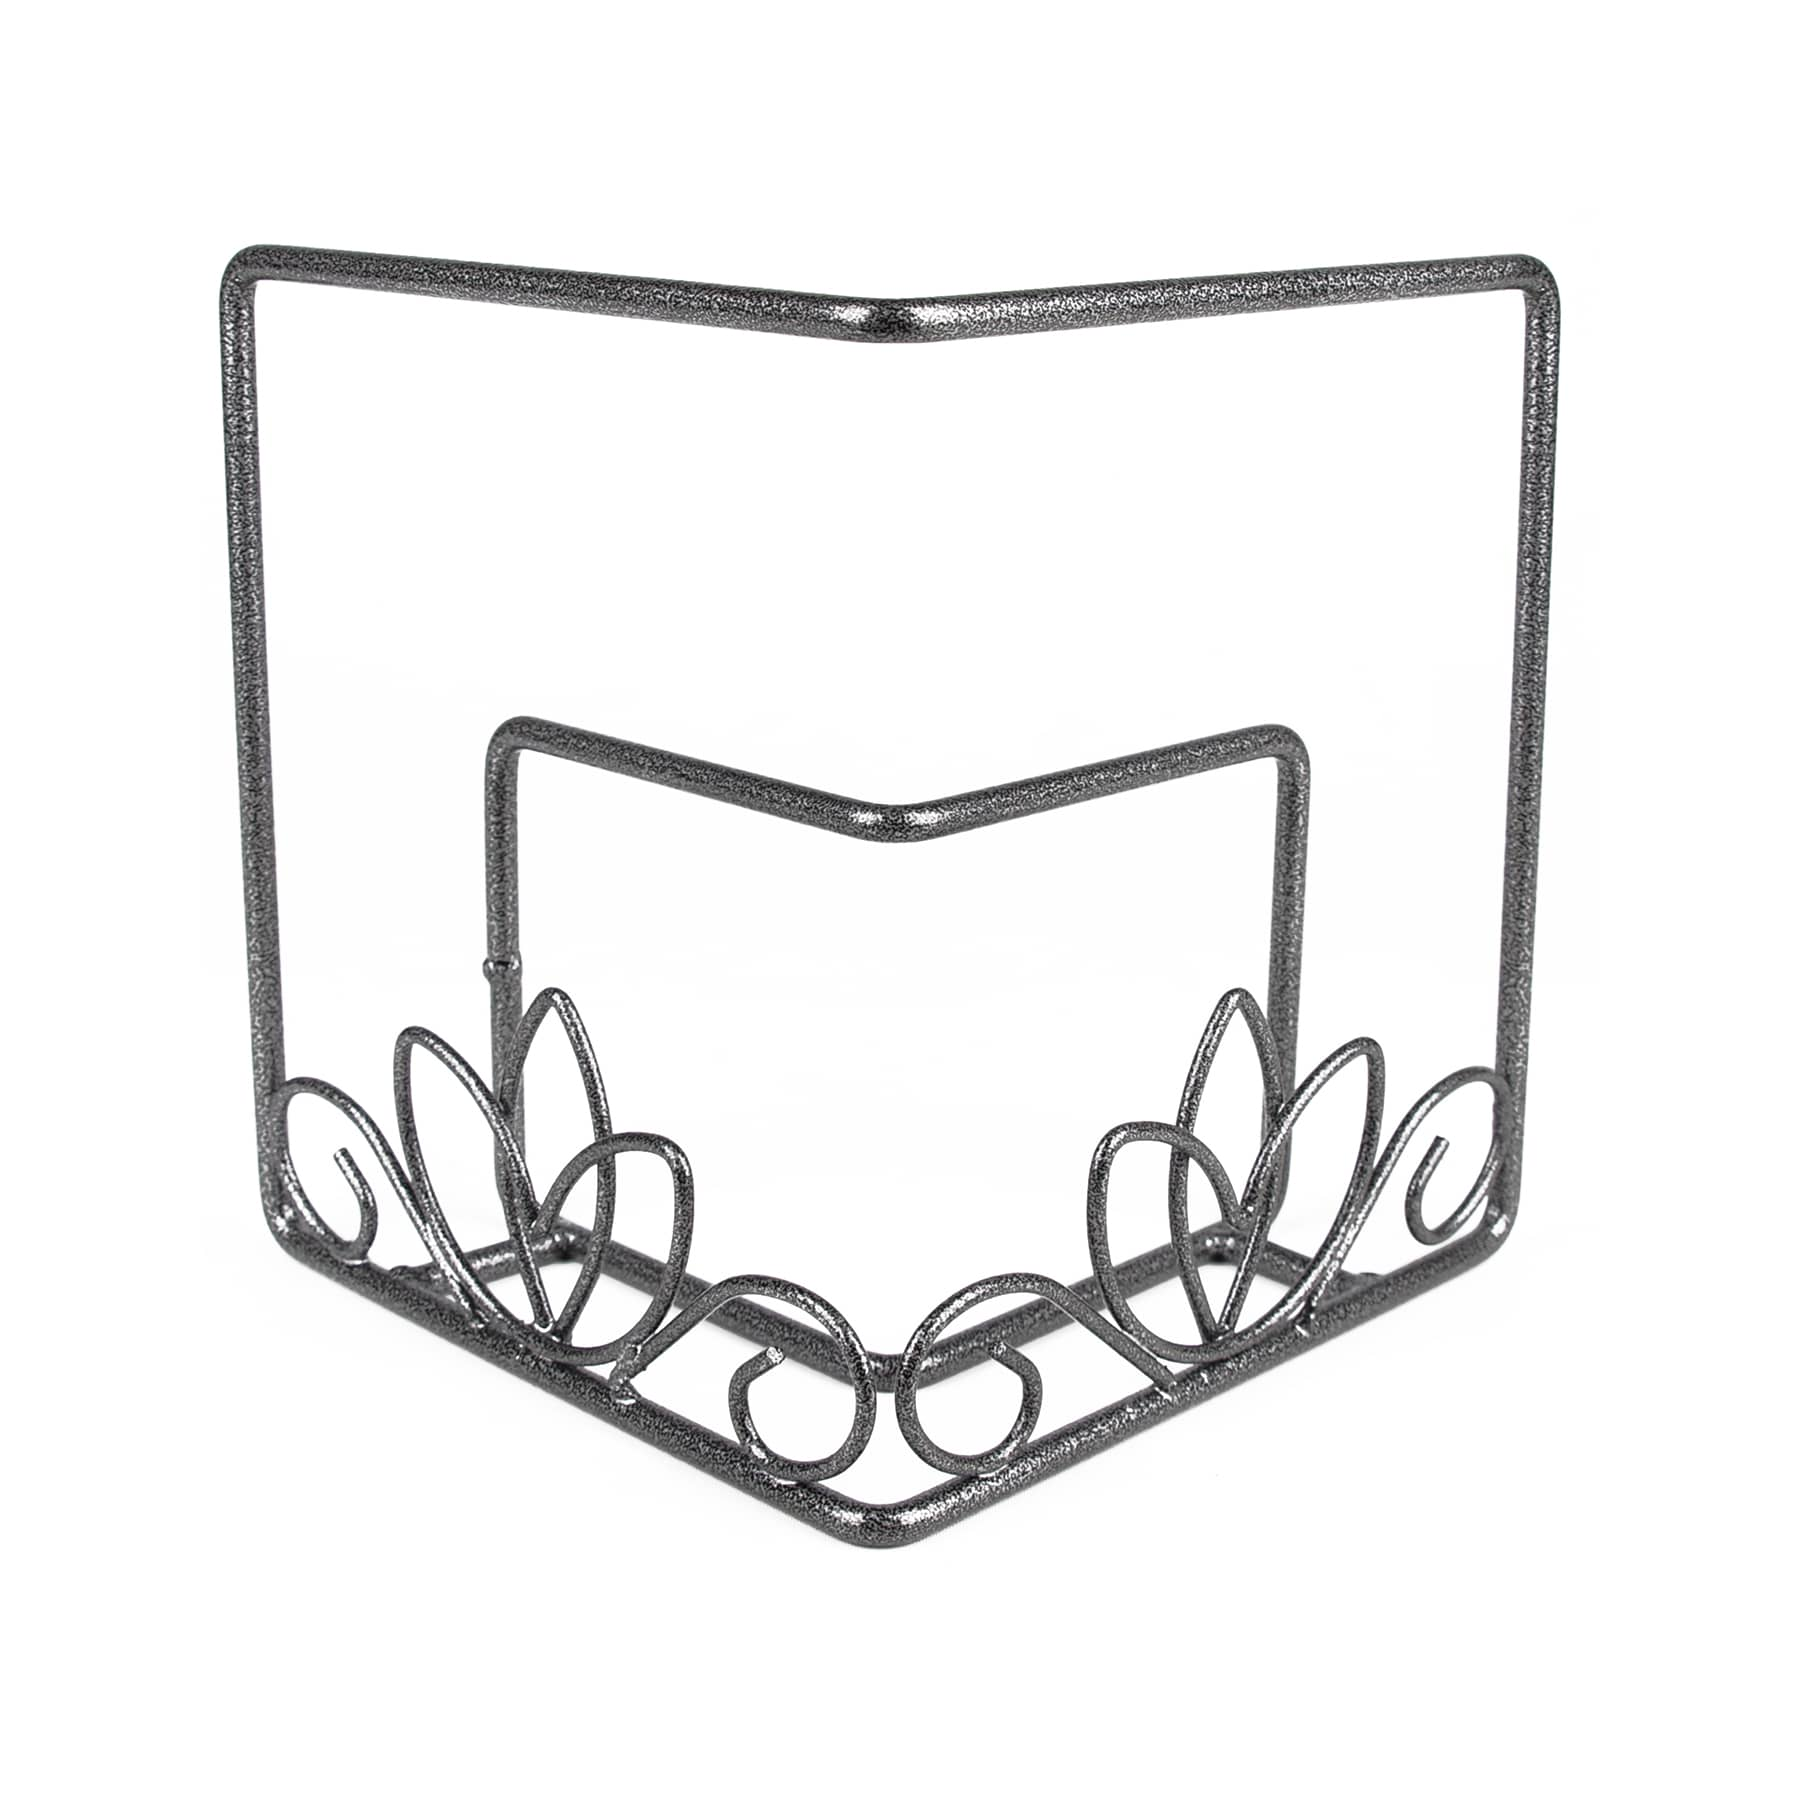 Raised Metal Bed Garden Corners Metal Garden Corner Brackets - Silver